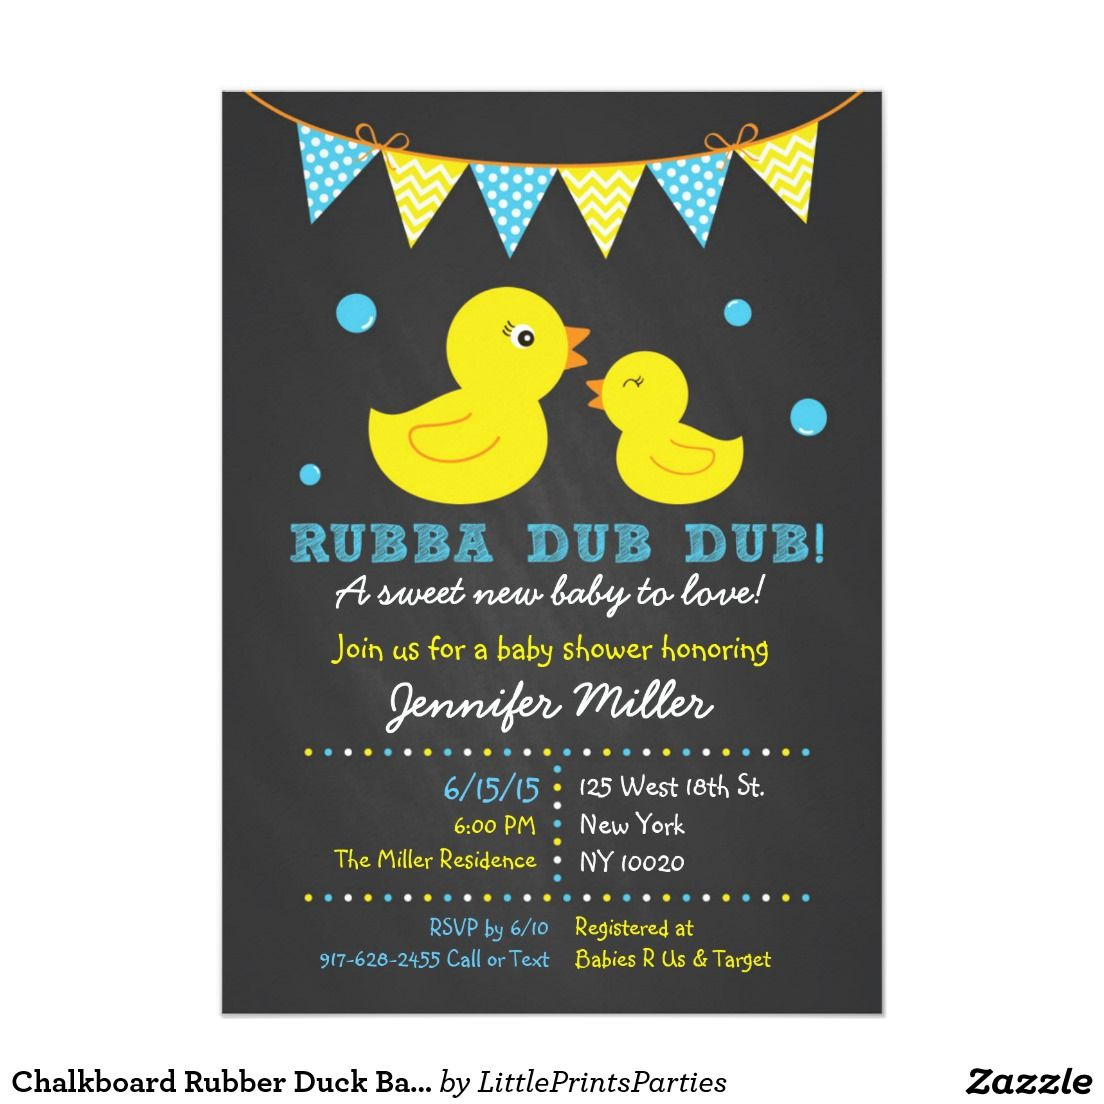 Chalkboard Rubber Duck Baby Shower Invitation | Duck baby showers ...